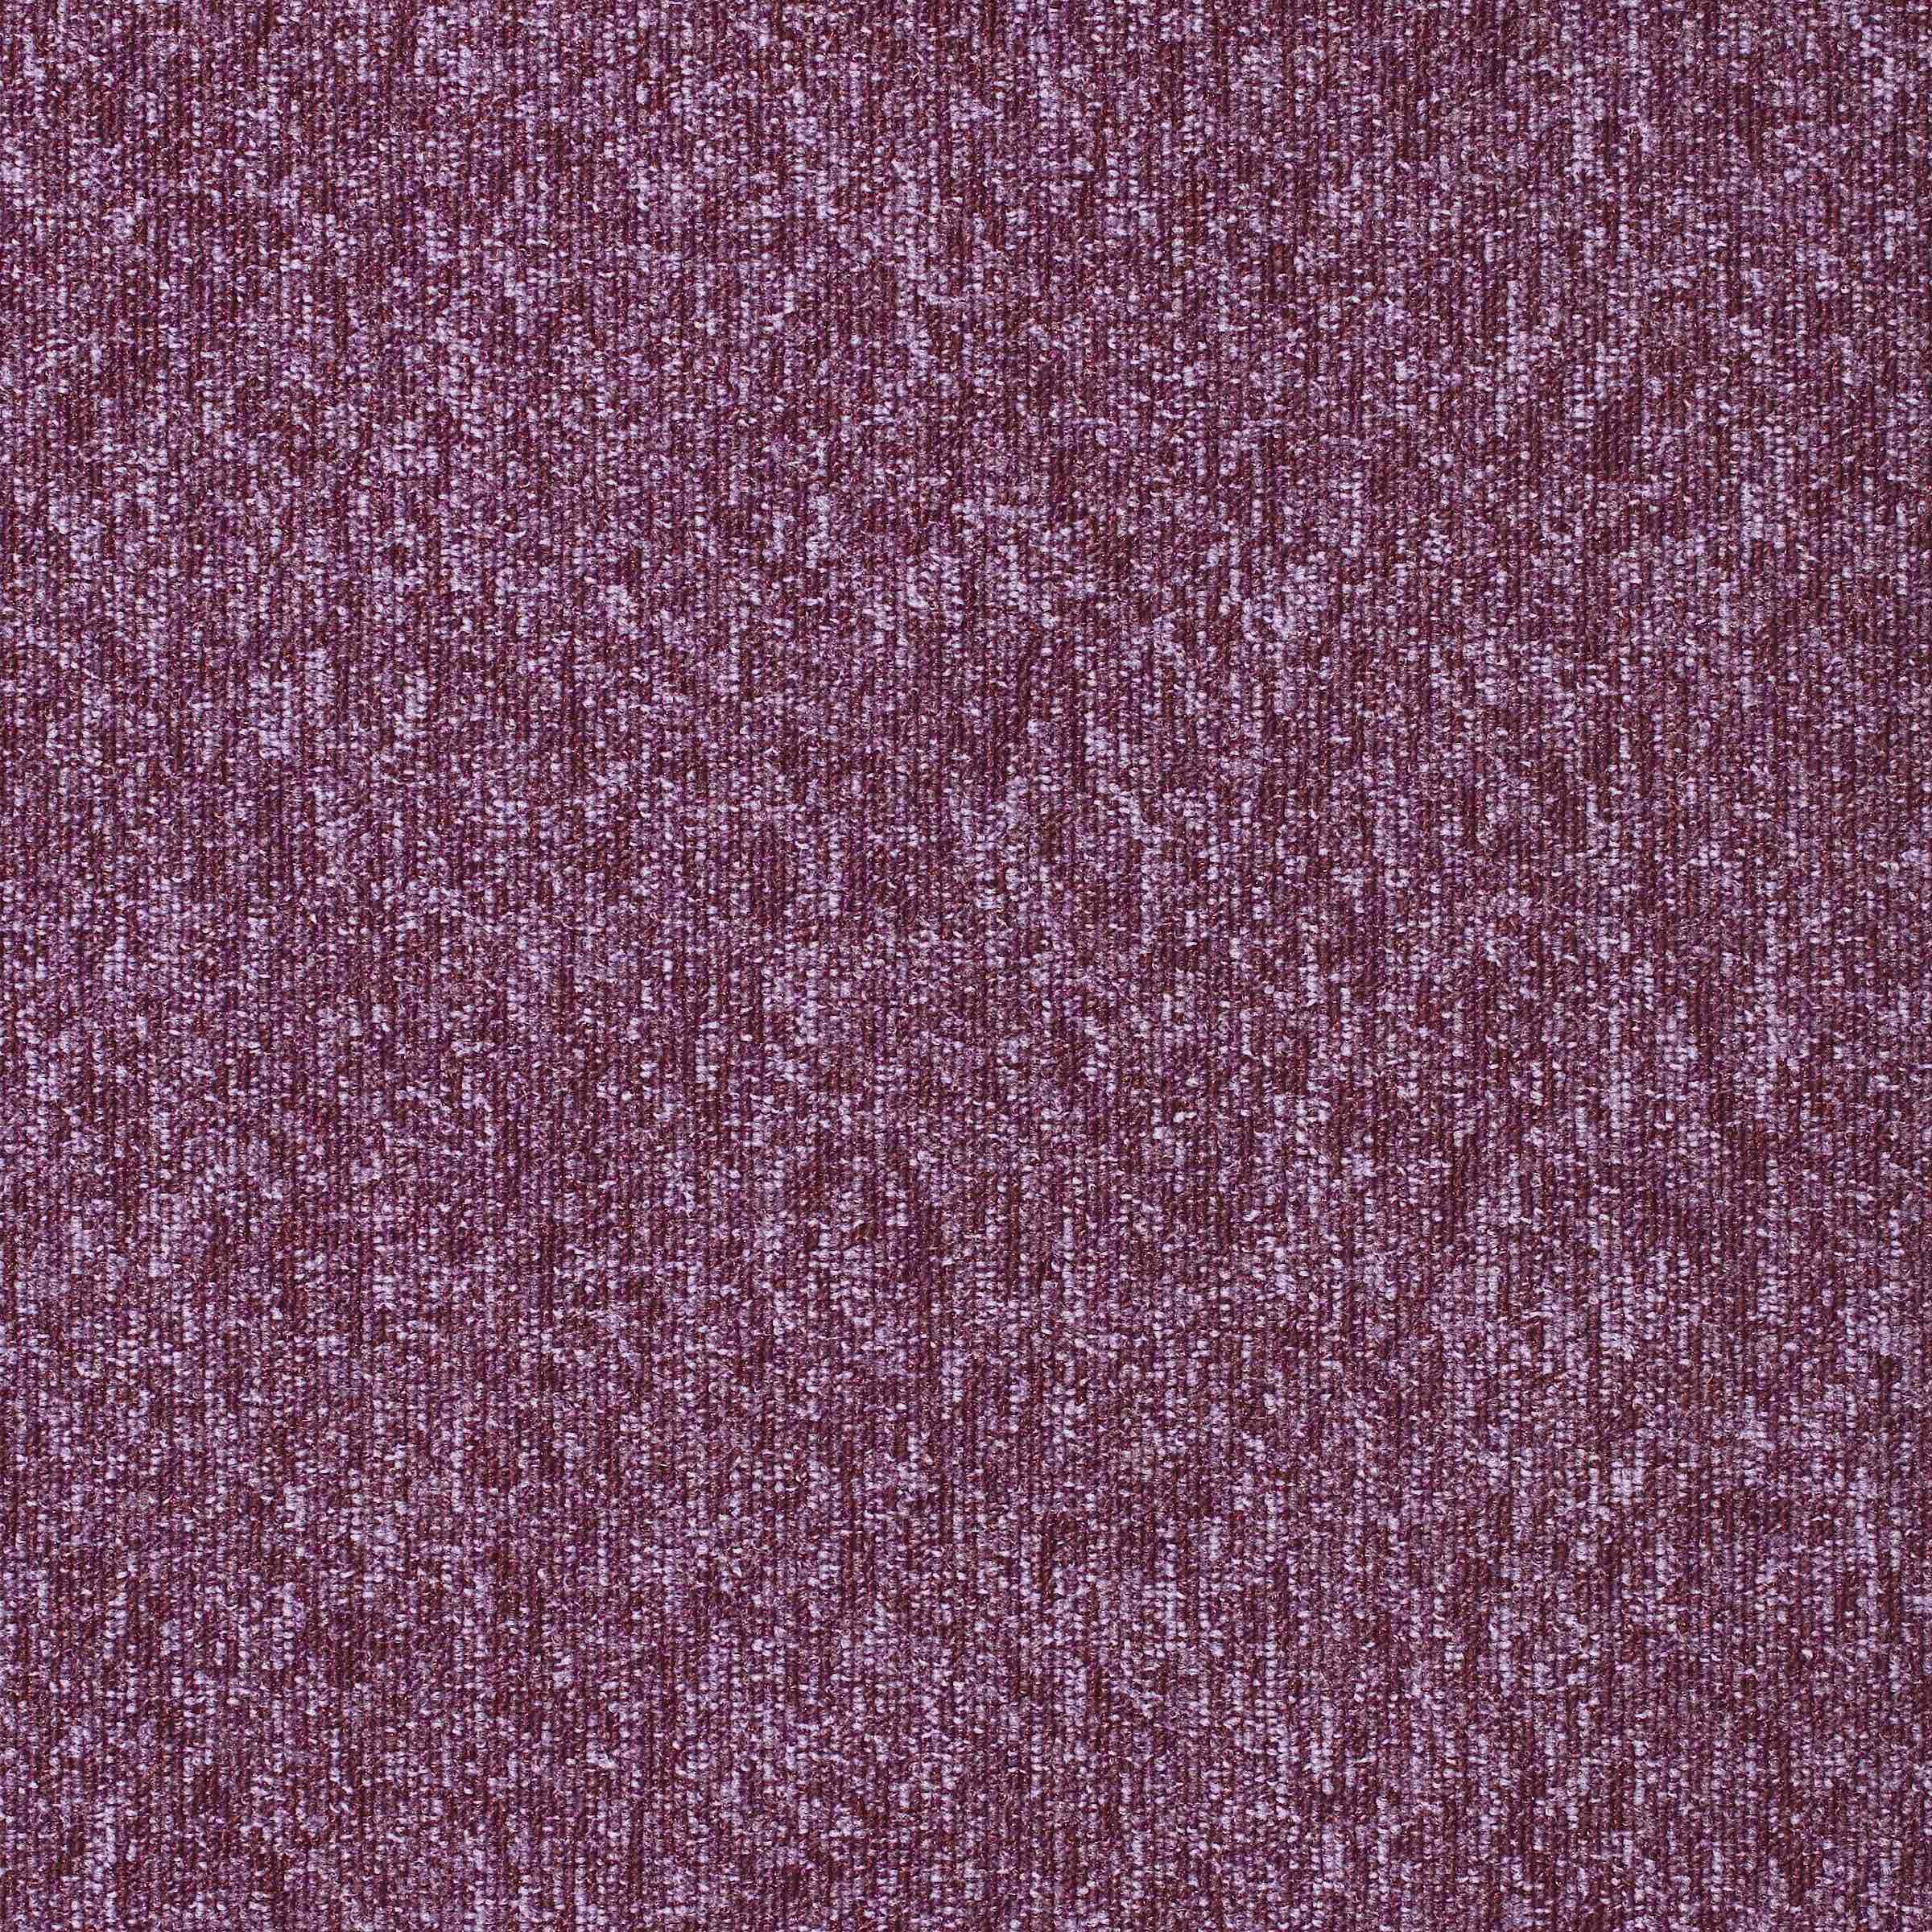 Diversity | Razzmic Berry, 740 | Paragon Carpet Tiles | Commercial Carpet Tiles